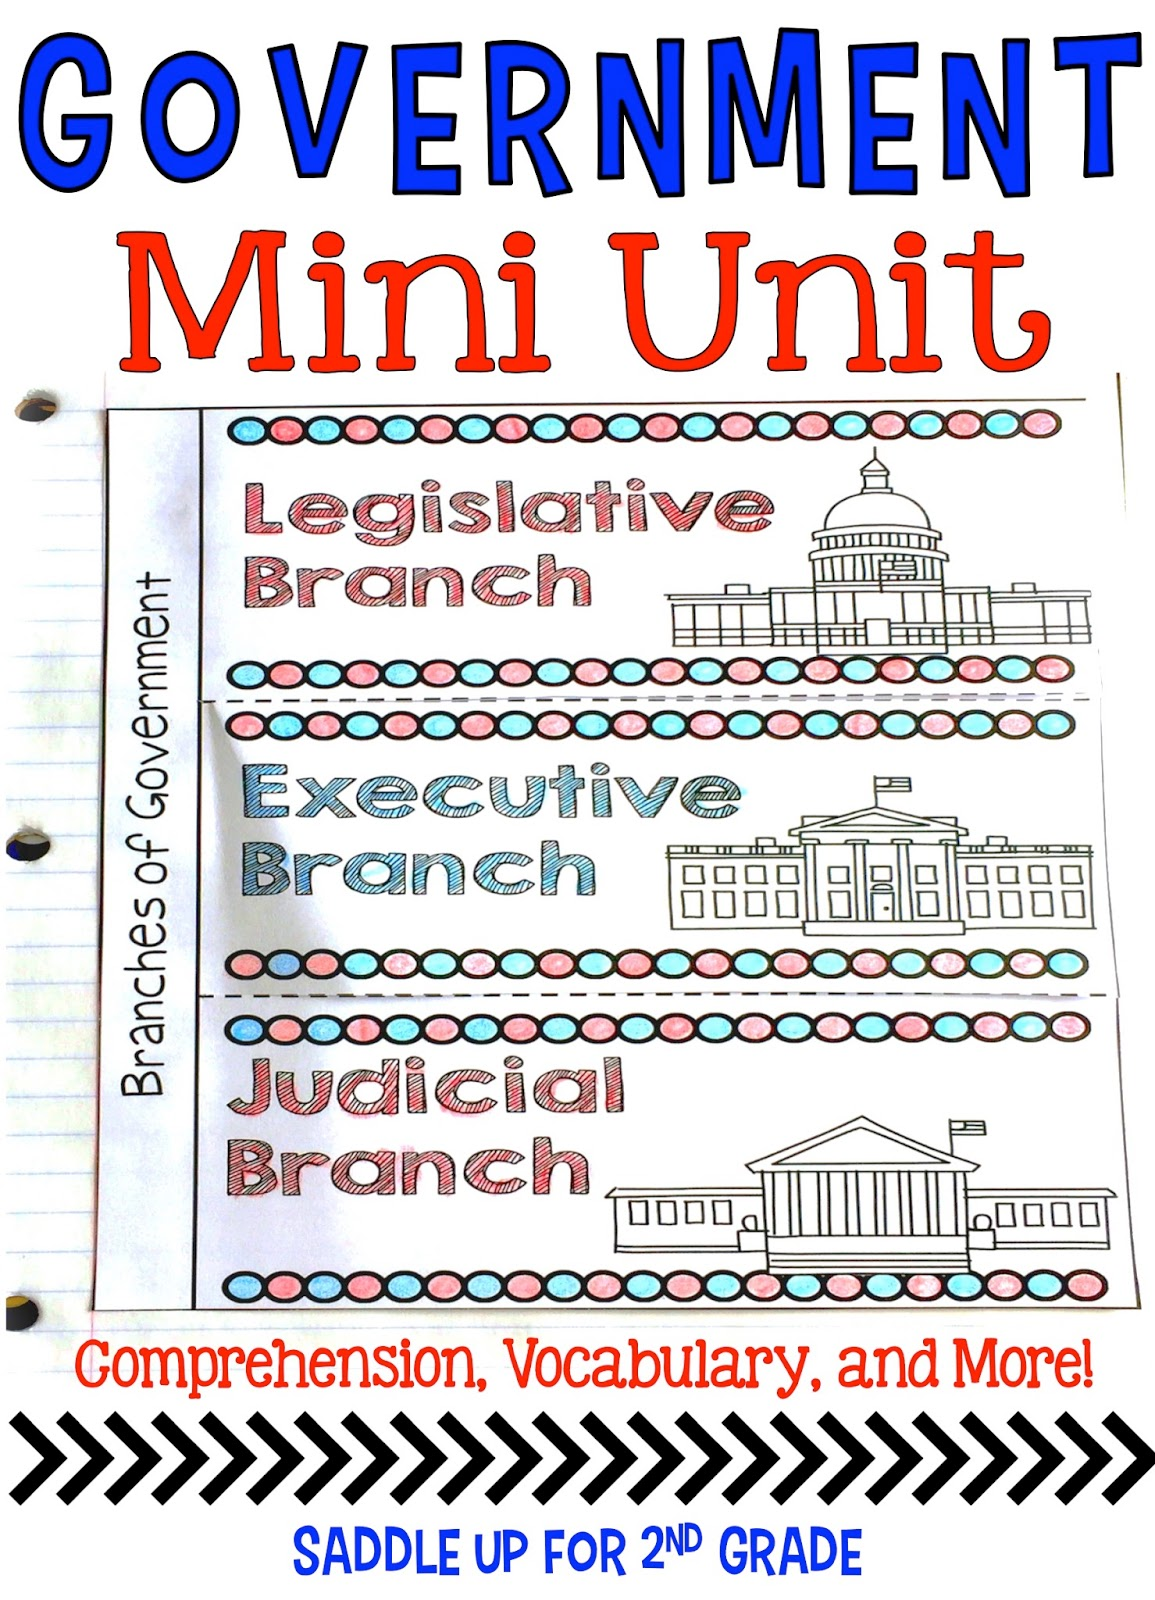 3 branches of government worksheets for 2nd grade